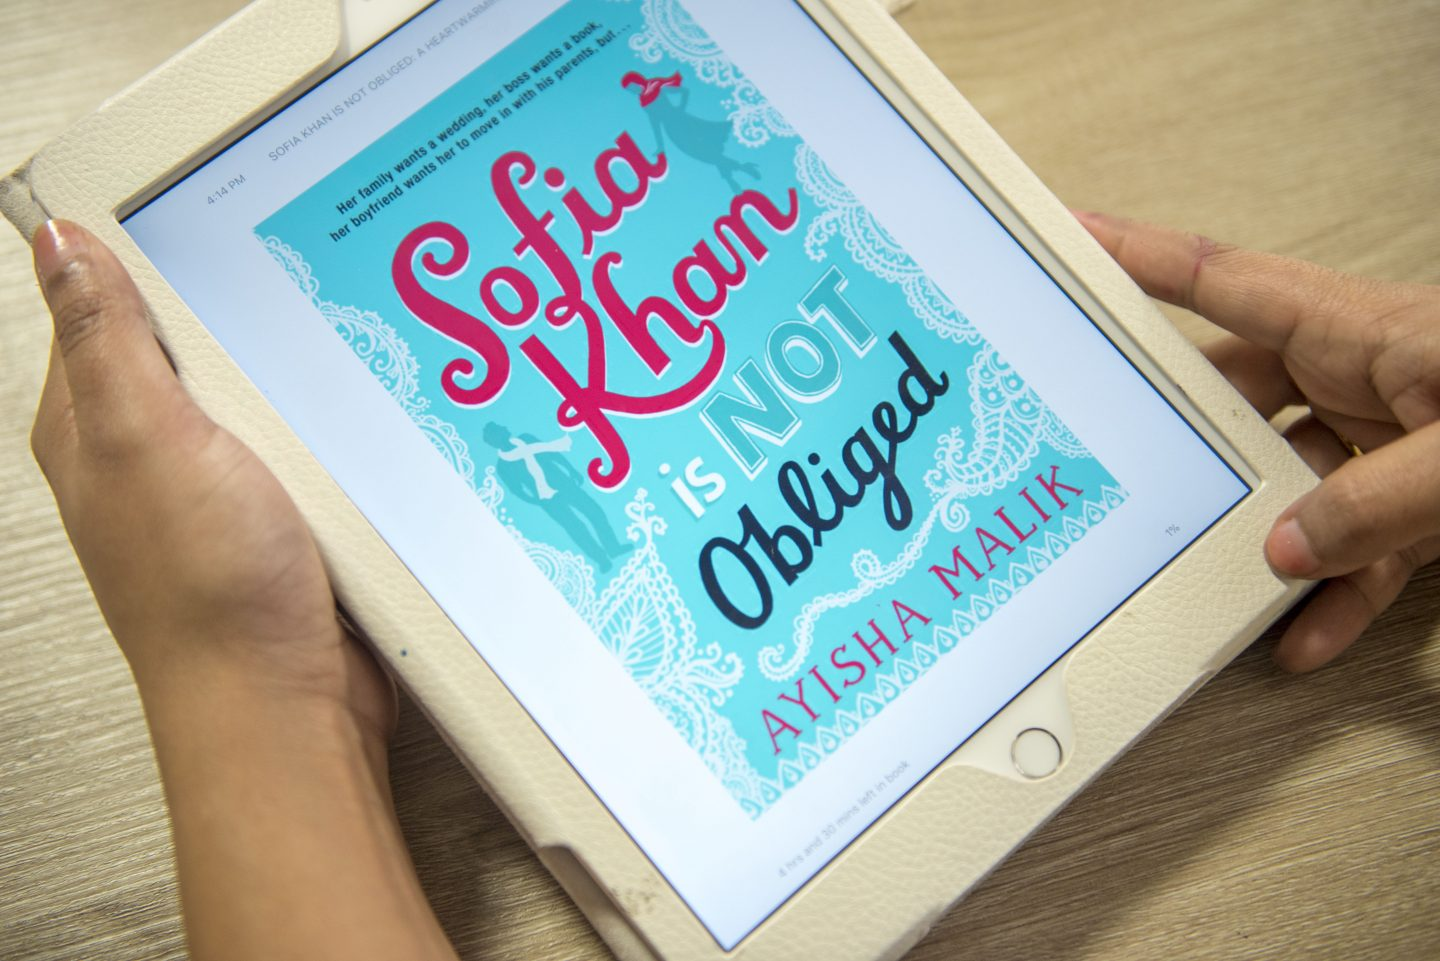 Sofia Khan is Not Obliged | Book Review